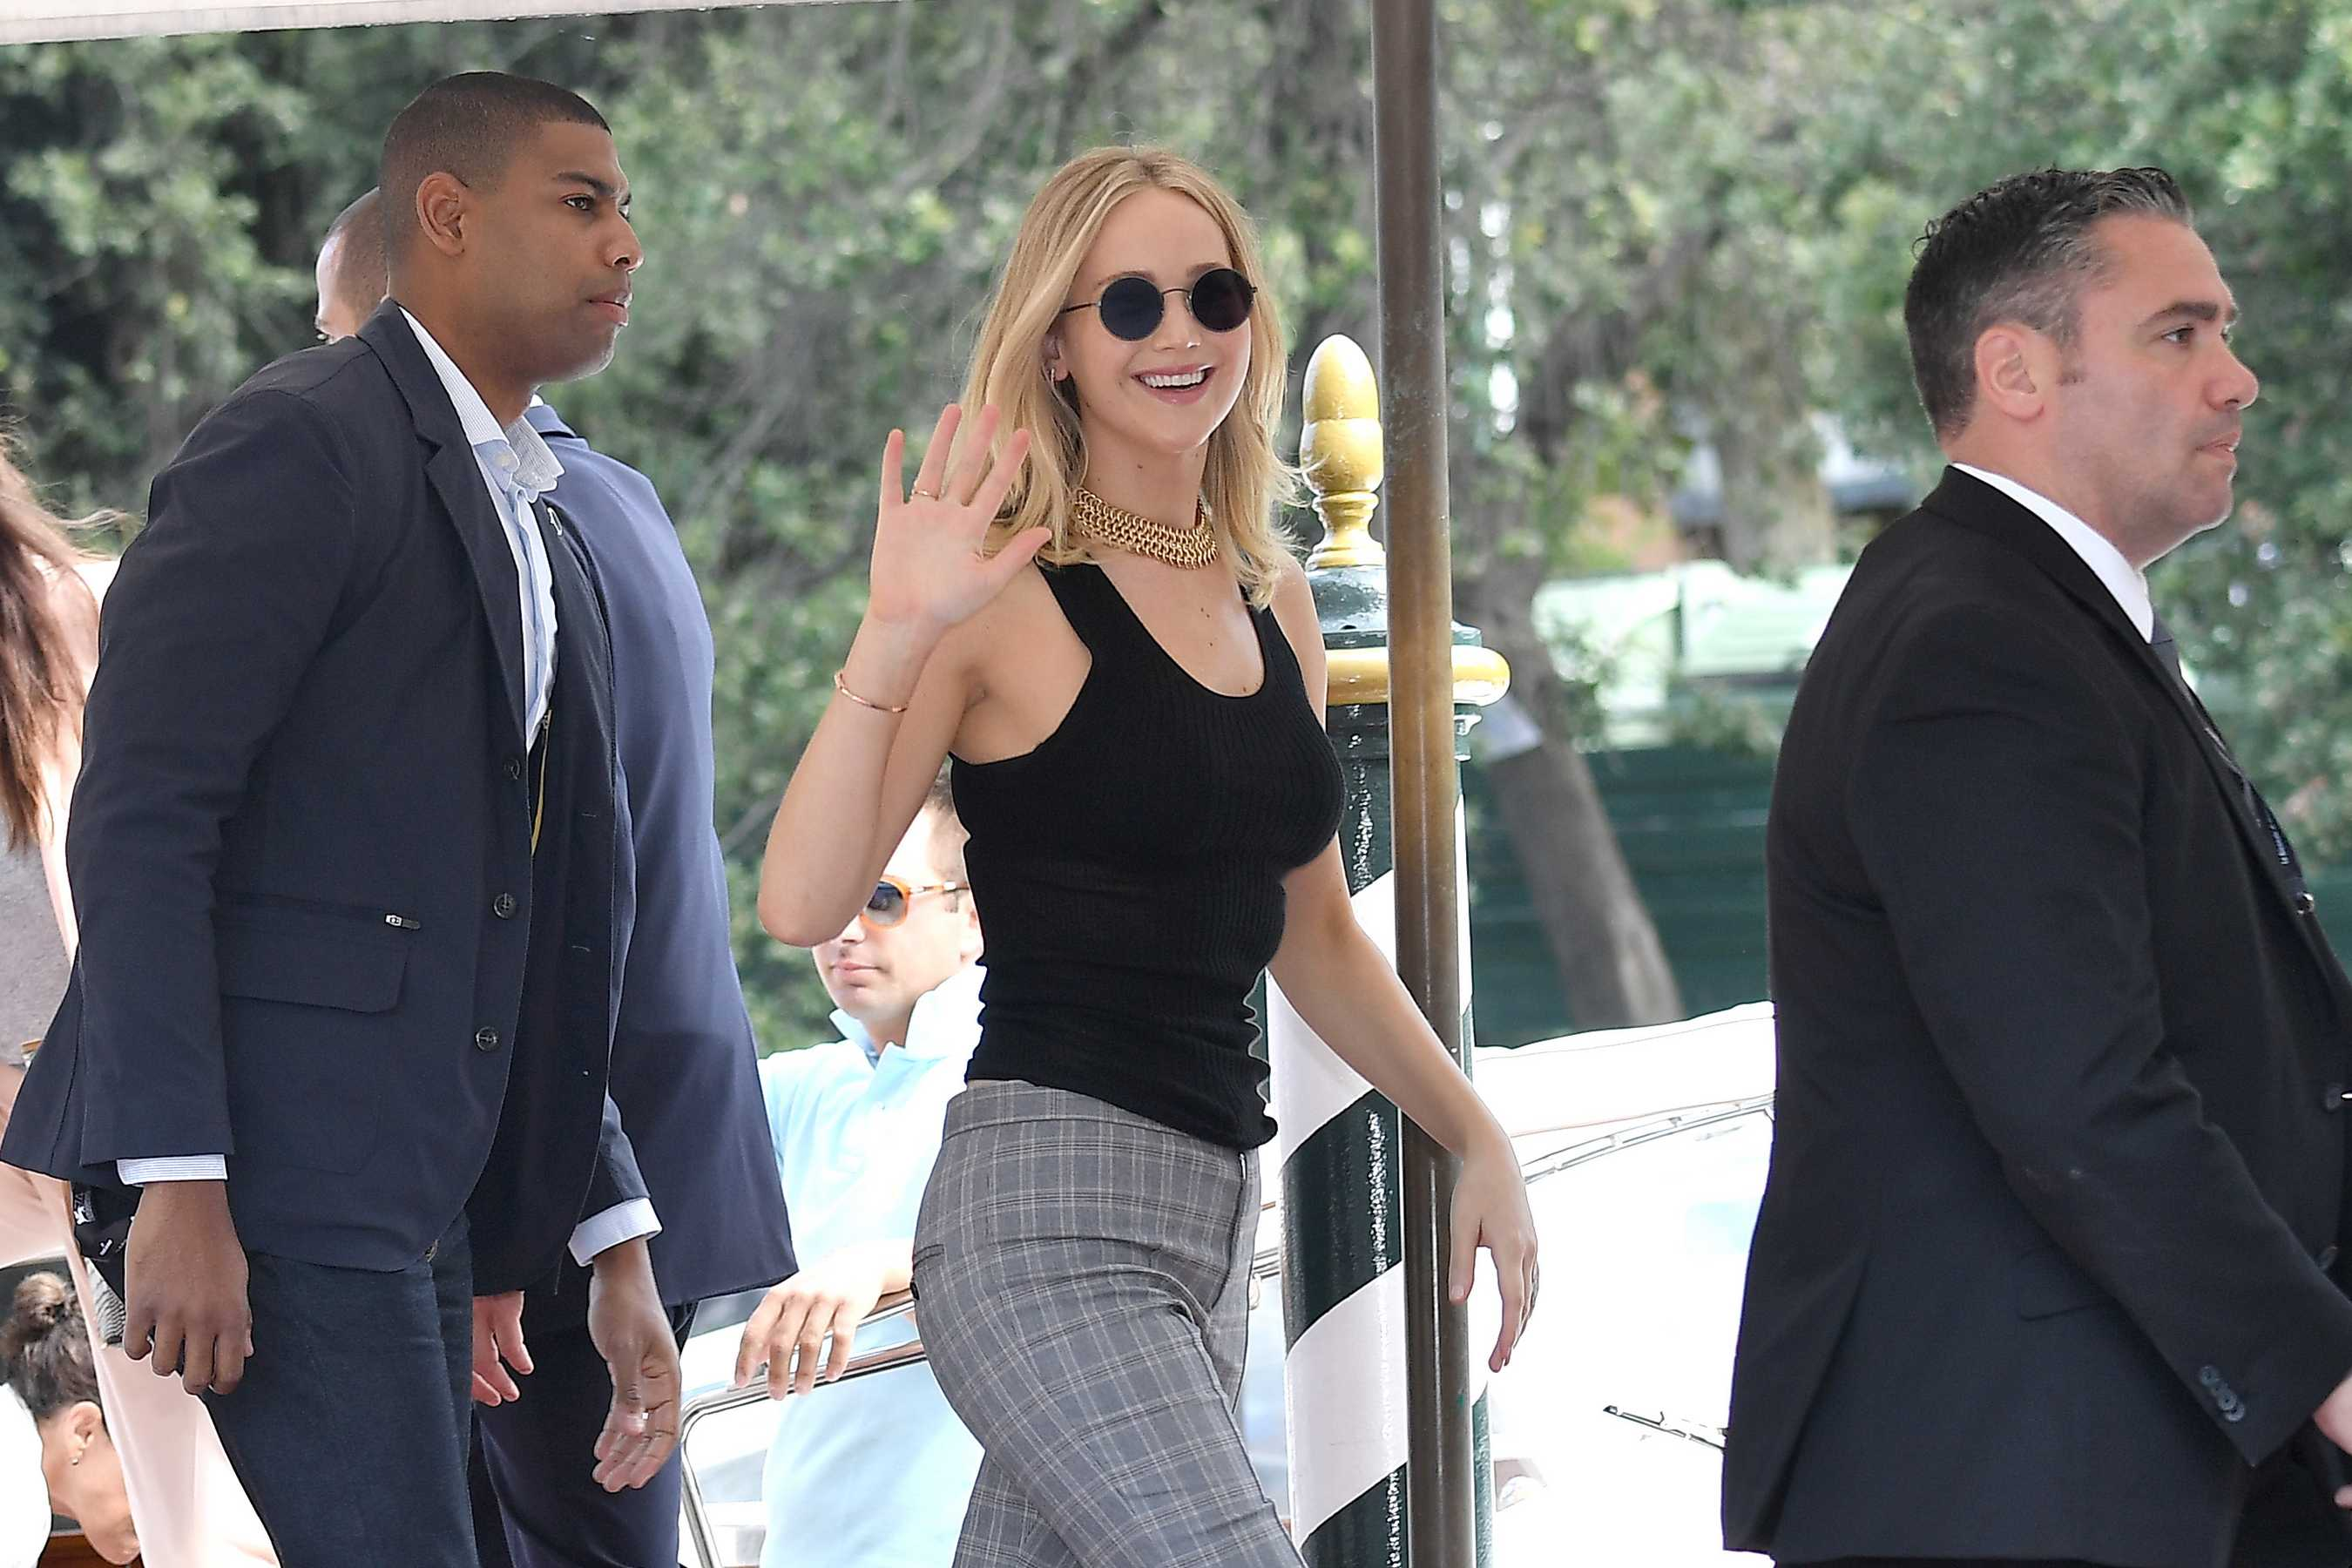 http://jenniferlawrencedaily.com/gallery/albums/userpics/10001/Jennifer_Lawrence_-_Arrives_at_Excelsior_Hotel_during_the_74th_Venice_Film_Festival_in_Italy_on_September_5-08~0.jpg